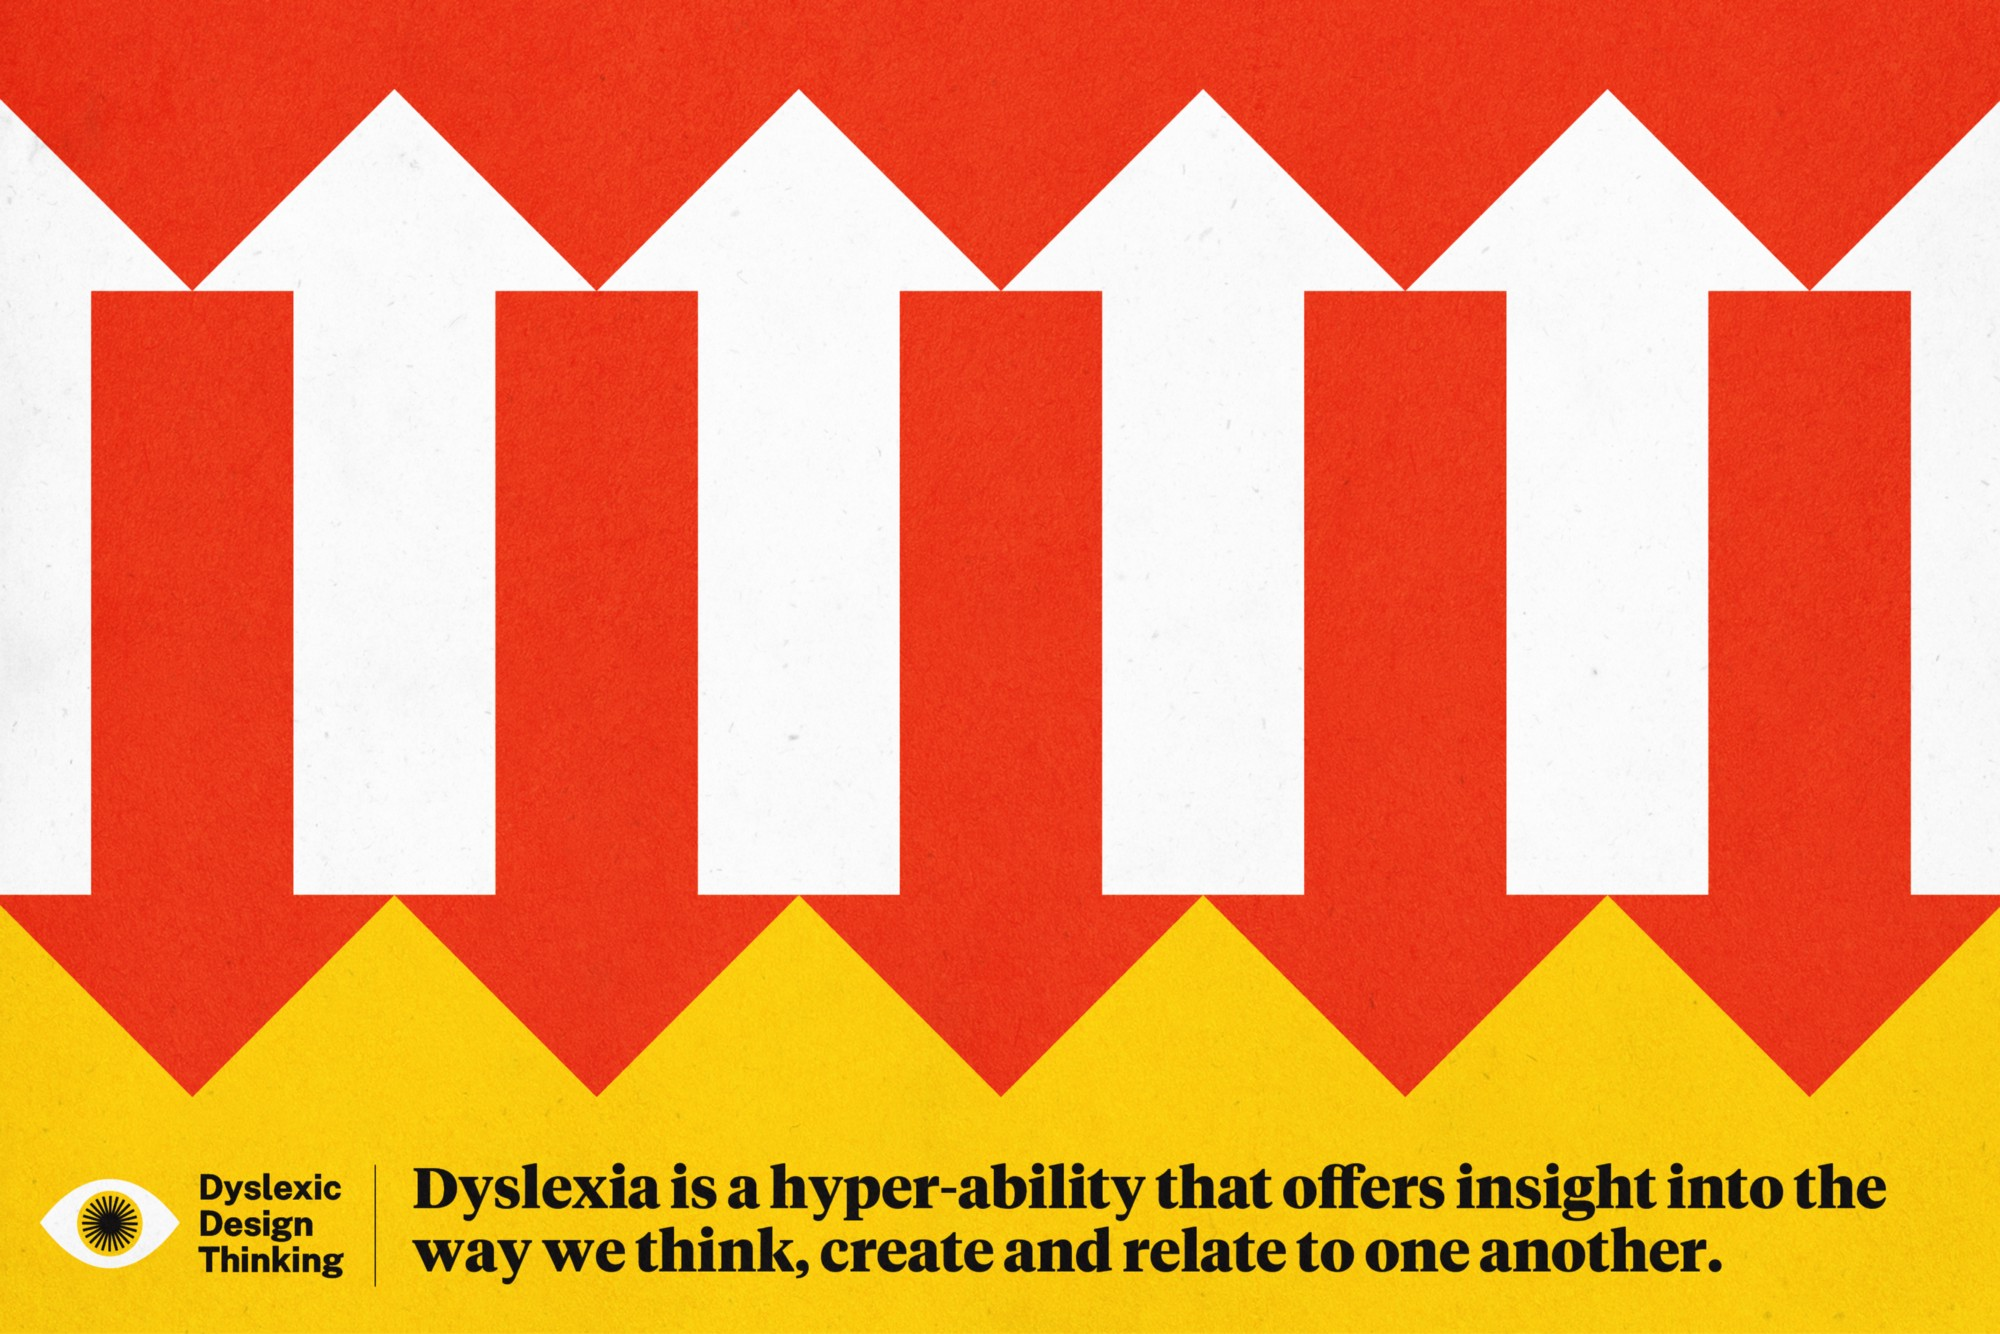 Red, white and yellow illustration of overlapping arrows, illustrating how dyslexia offers insight into creation and collaboration.